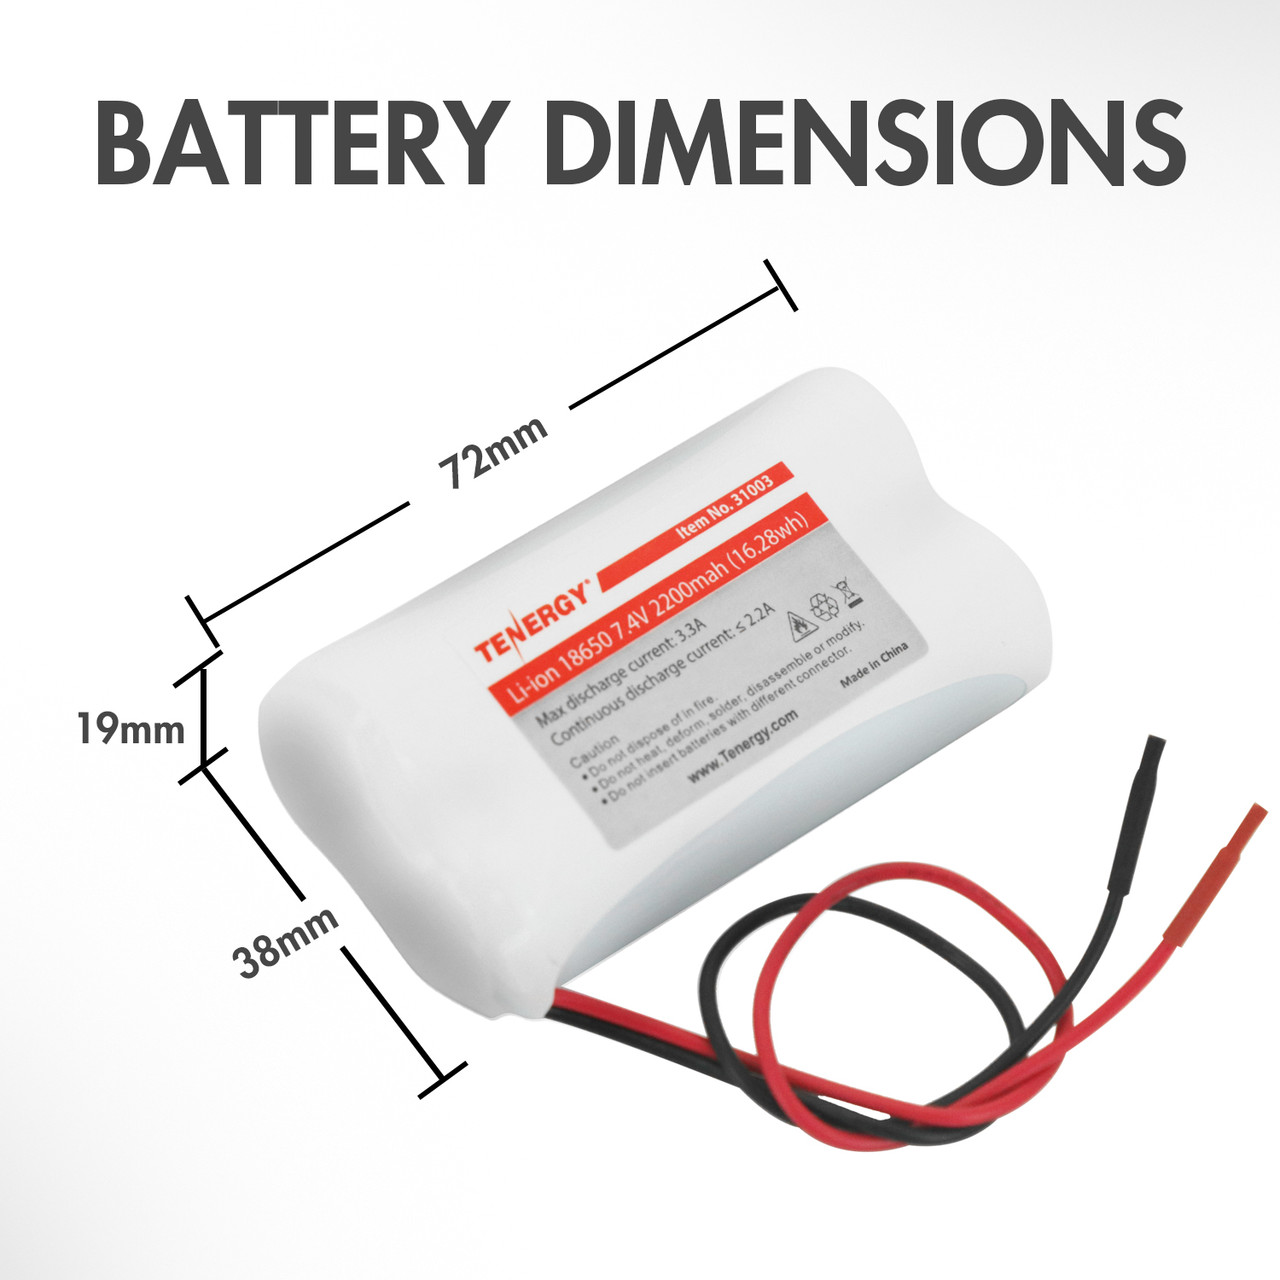 Tenergy Li-Ion 7.4V 2200mAh Rechargeable Battery w/ PCB (2S1P, 16.25Wh, 3A Rate)